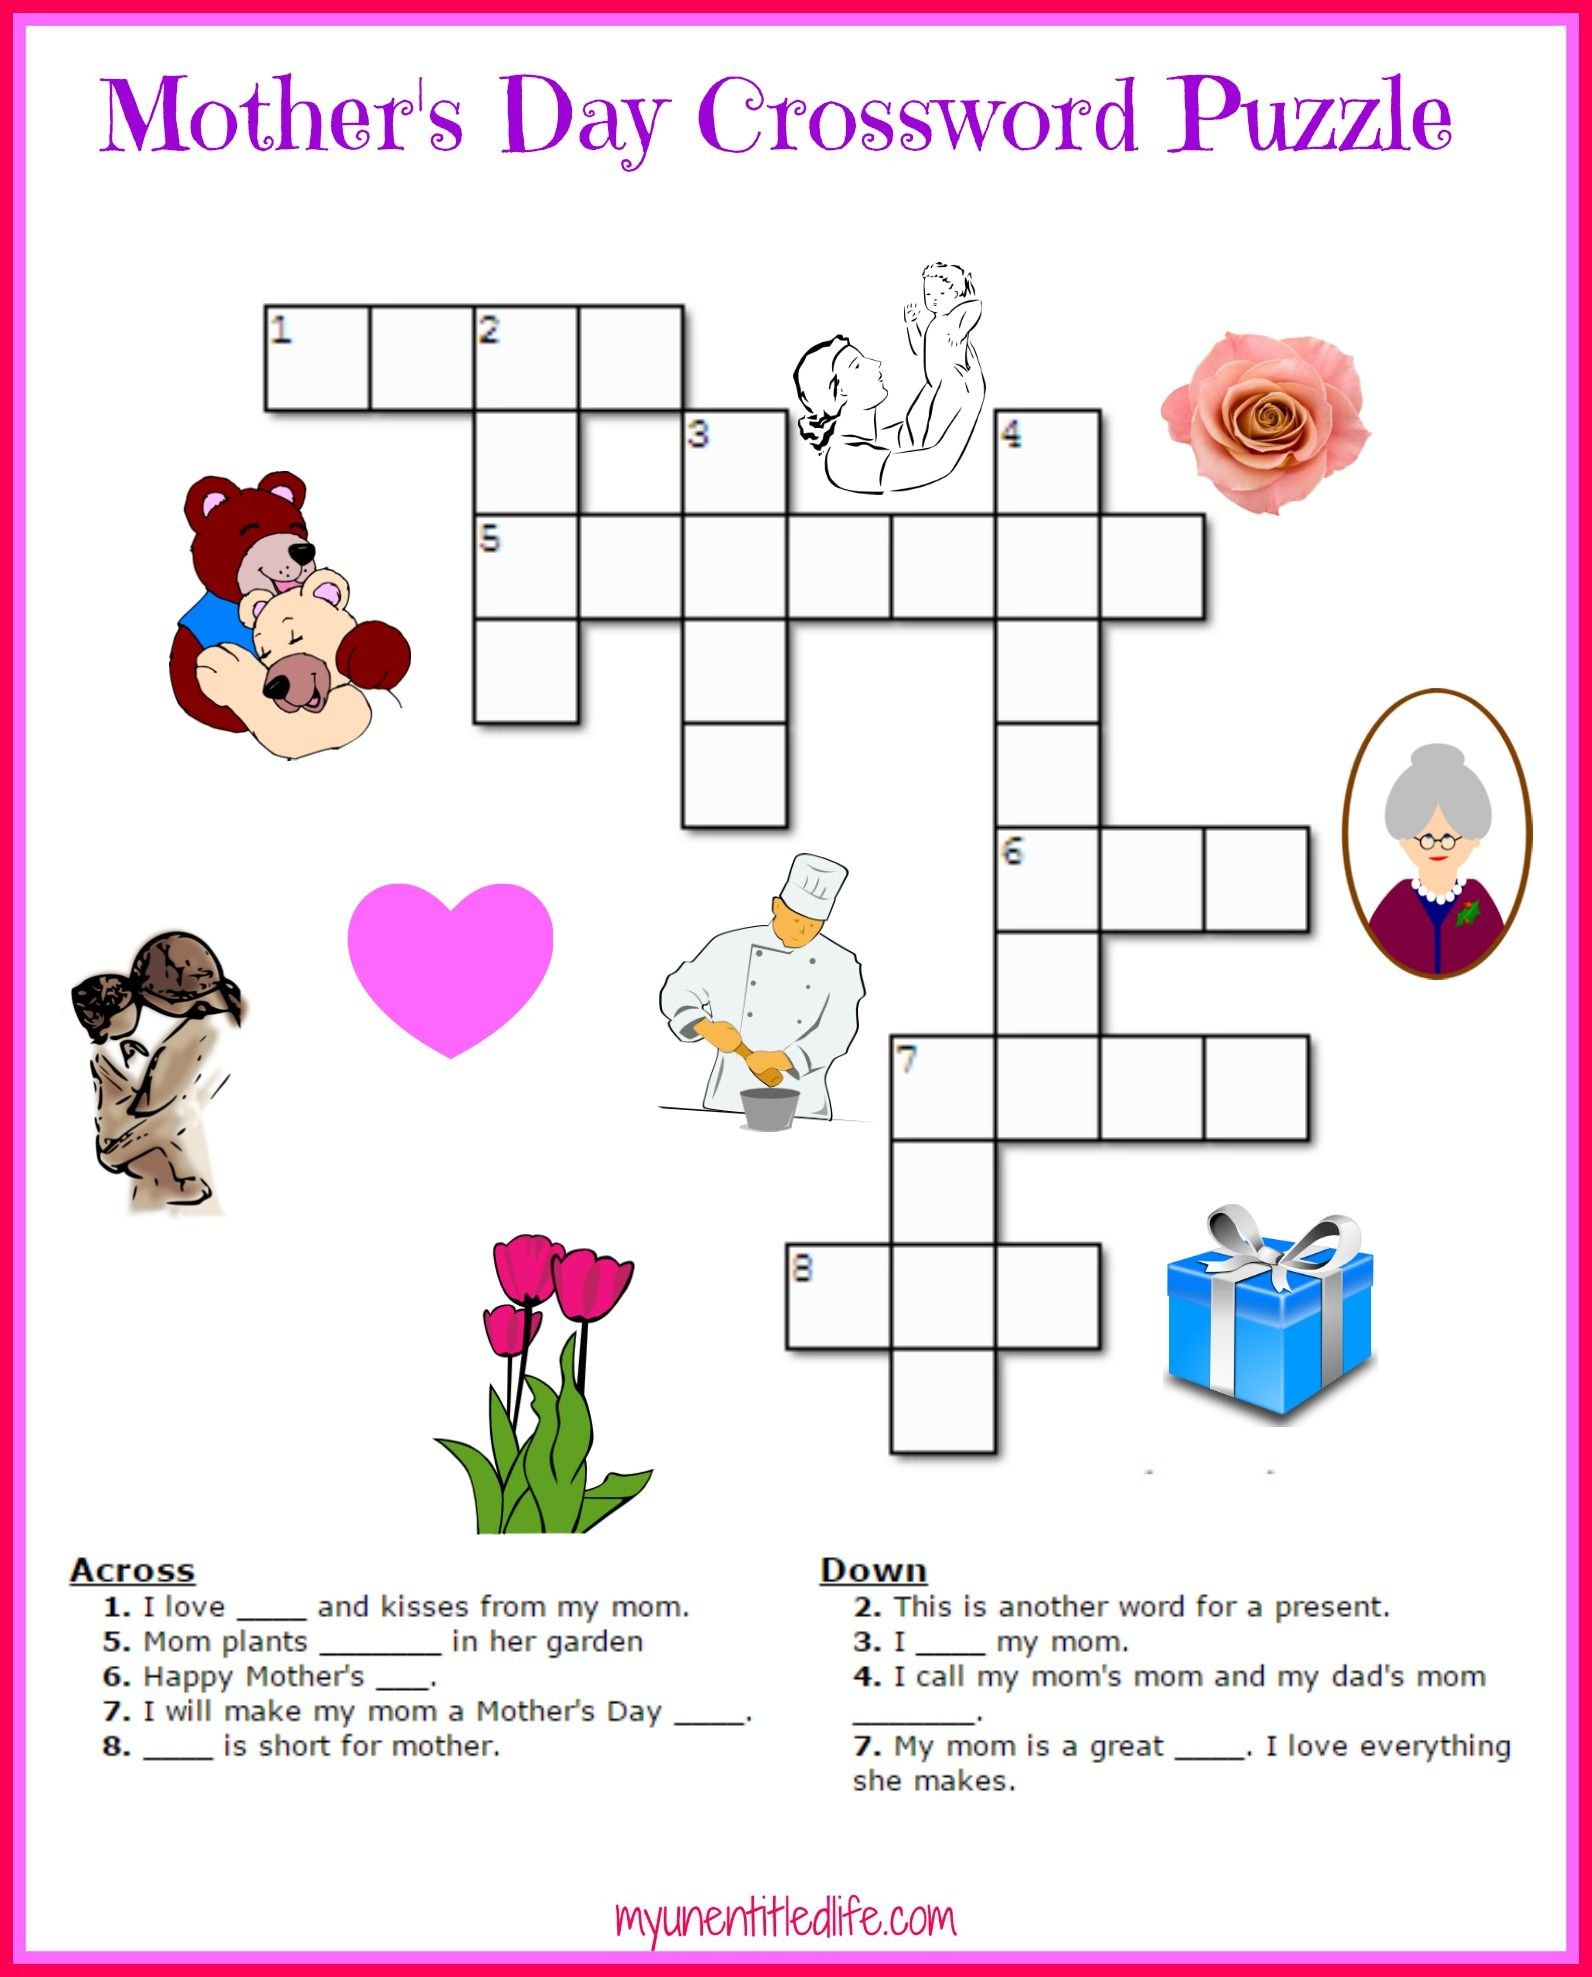 Free Mother's Day Crossword Puzzle Printable | Crafts For Kids - Printable Daily Puzzle